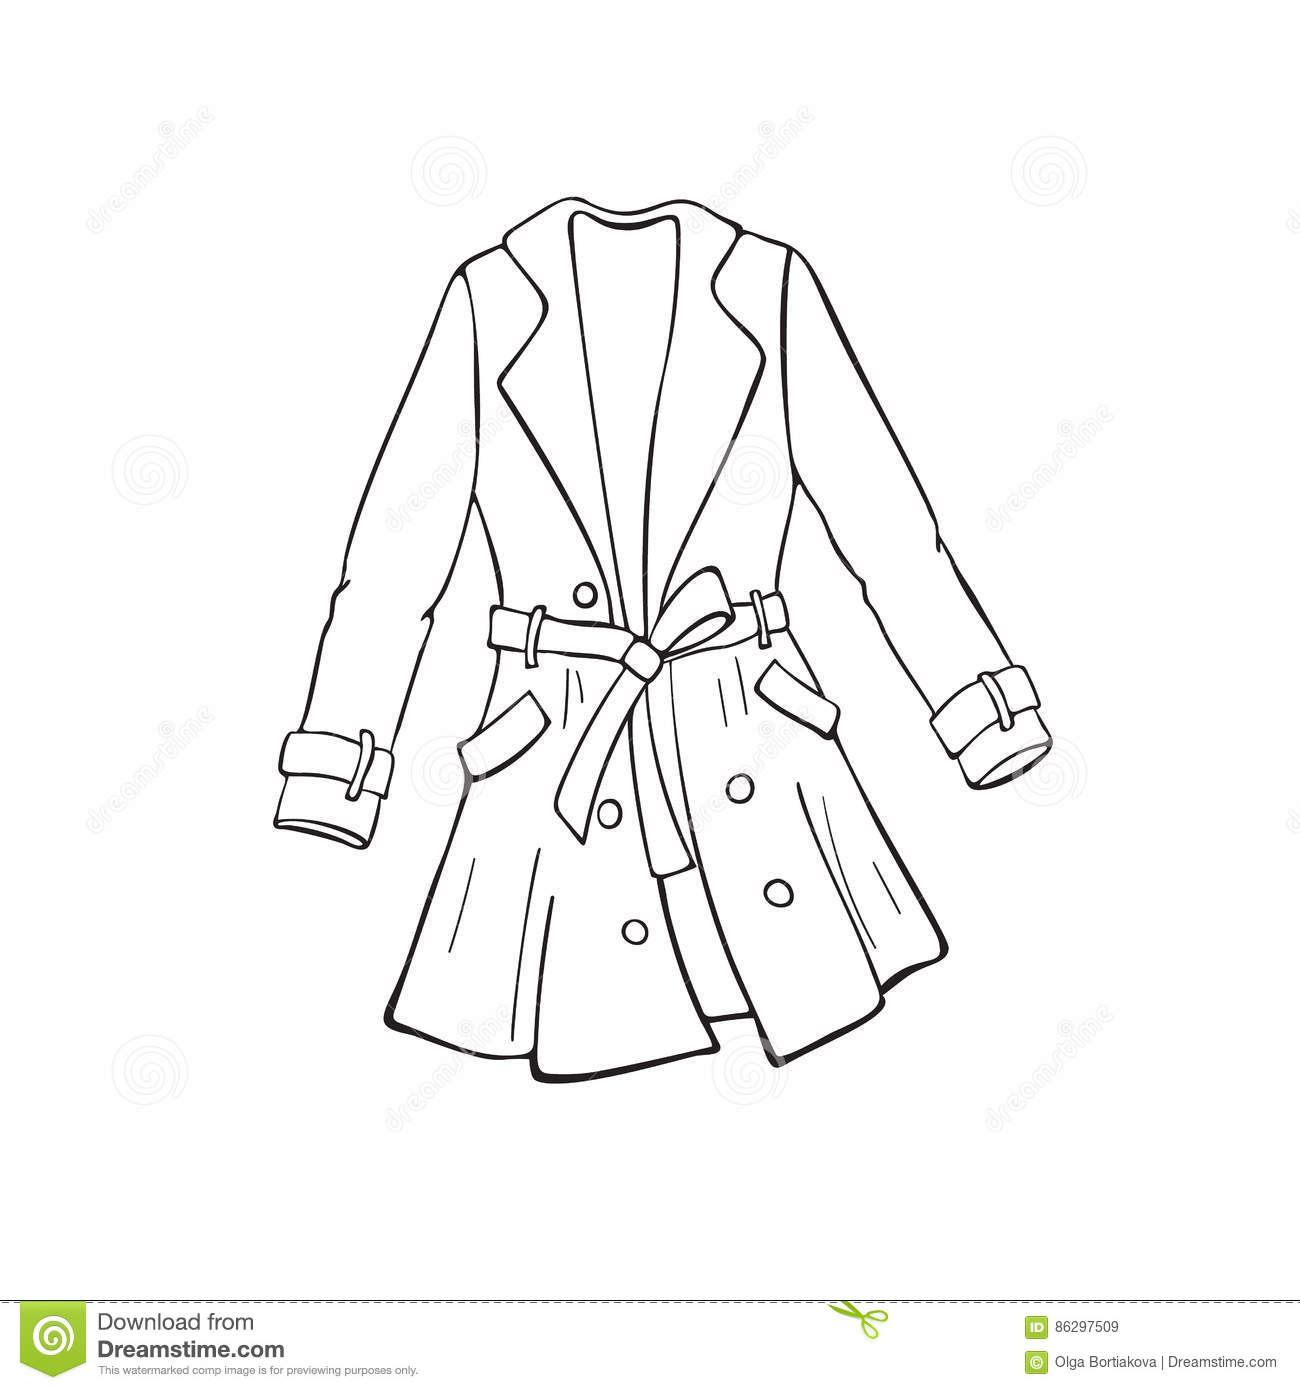 Line Drawing Jacket : Coat outline icon stock vector illustration of concept